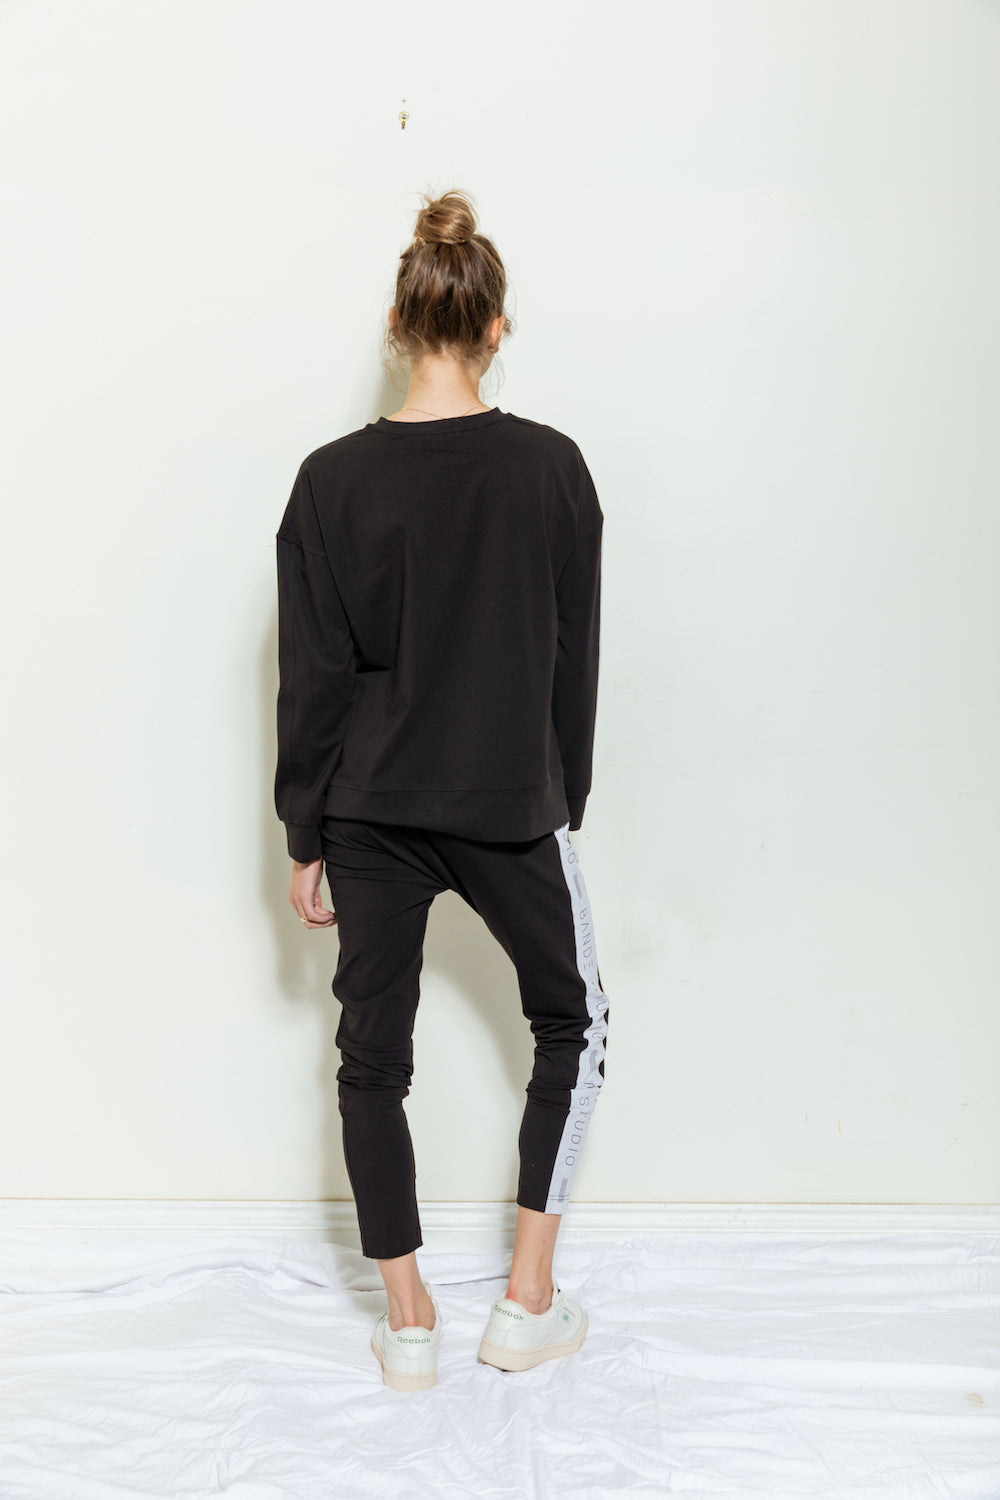 Tara Colour Block Slouch Pant - black / light grey